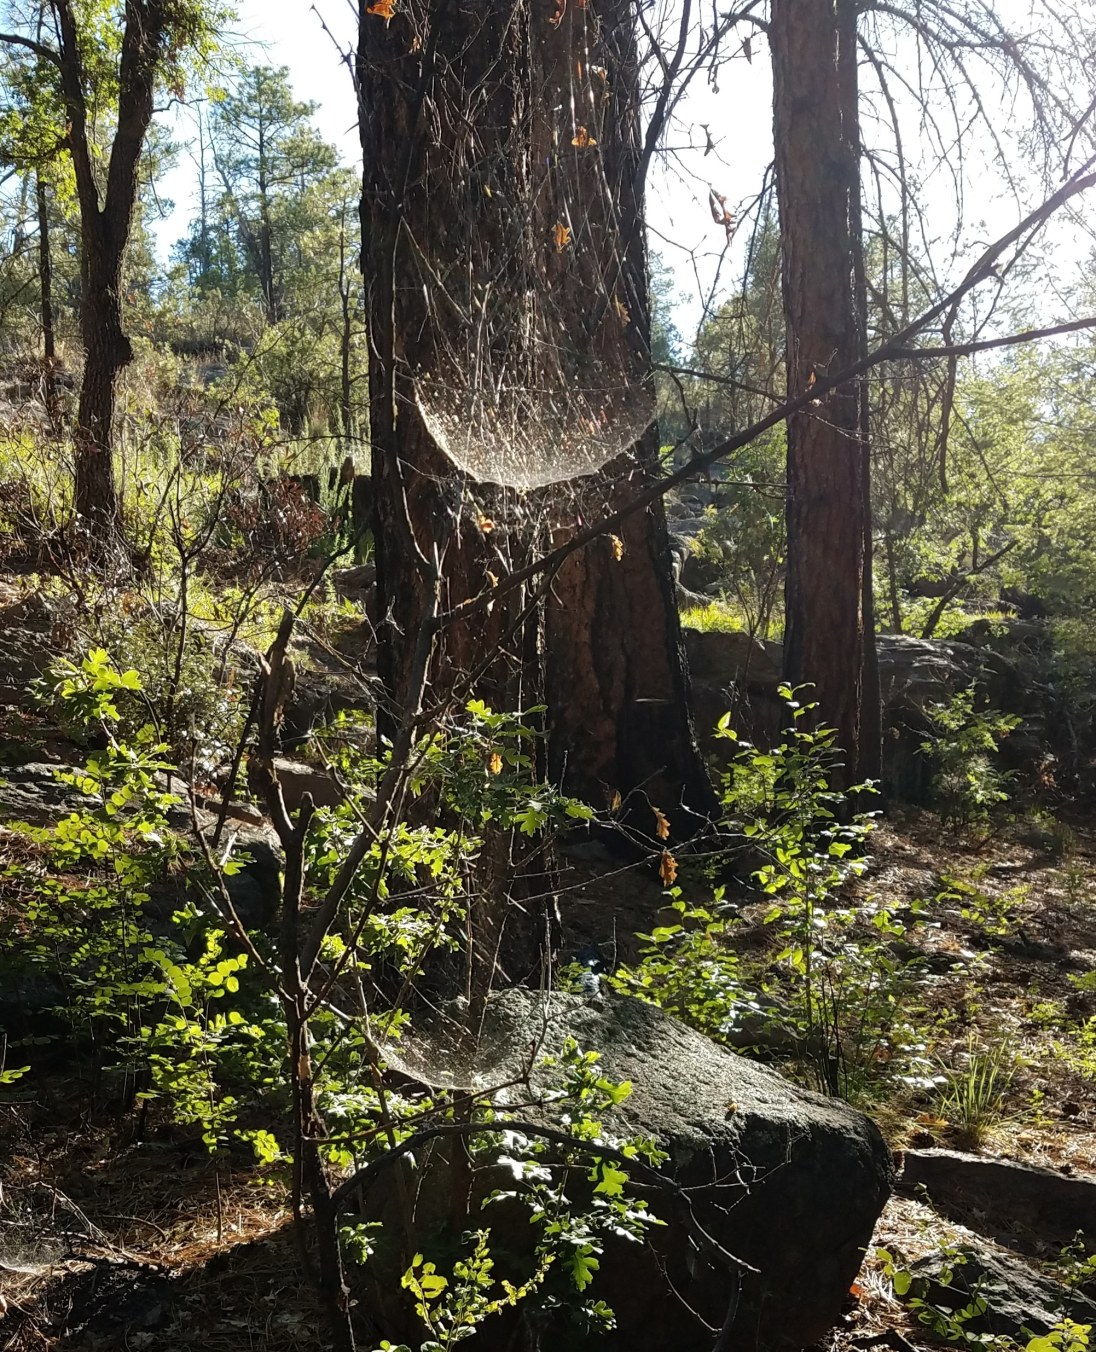 Spider webs capturing sunlight